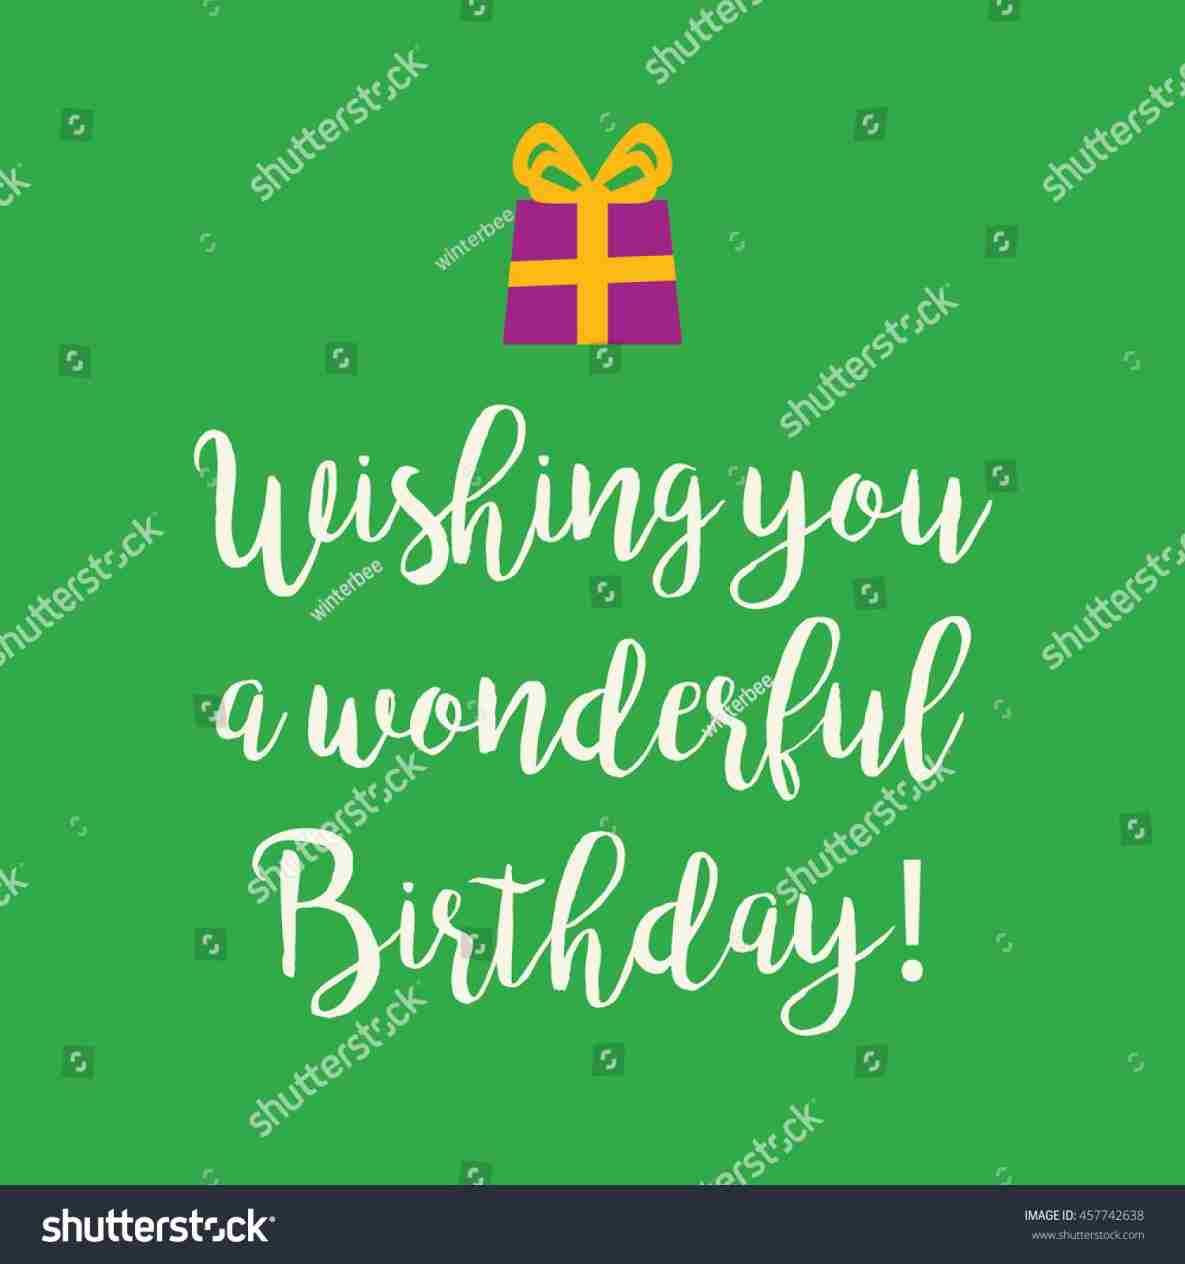 send a birthday wish to a cell phone ; send-a-free-birthday-card-to-cell-phone-inspirational-happy-birthday-wife-wishes-quotes-messages-birthday-messages-photograph-of-send-a-free-birthday-card-to-cell-phone